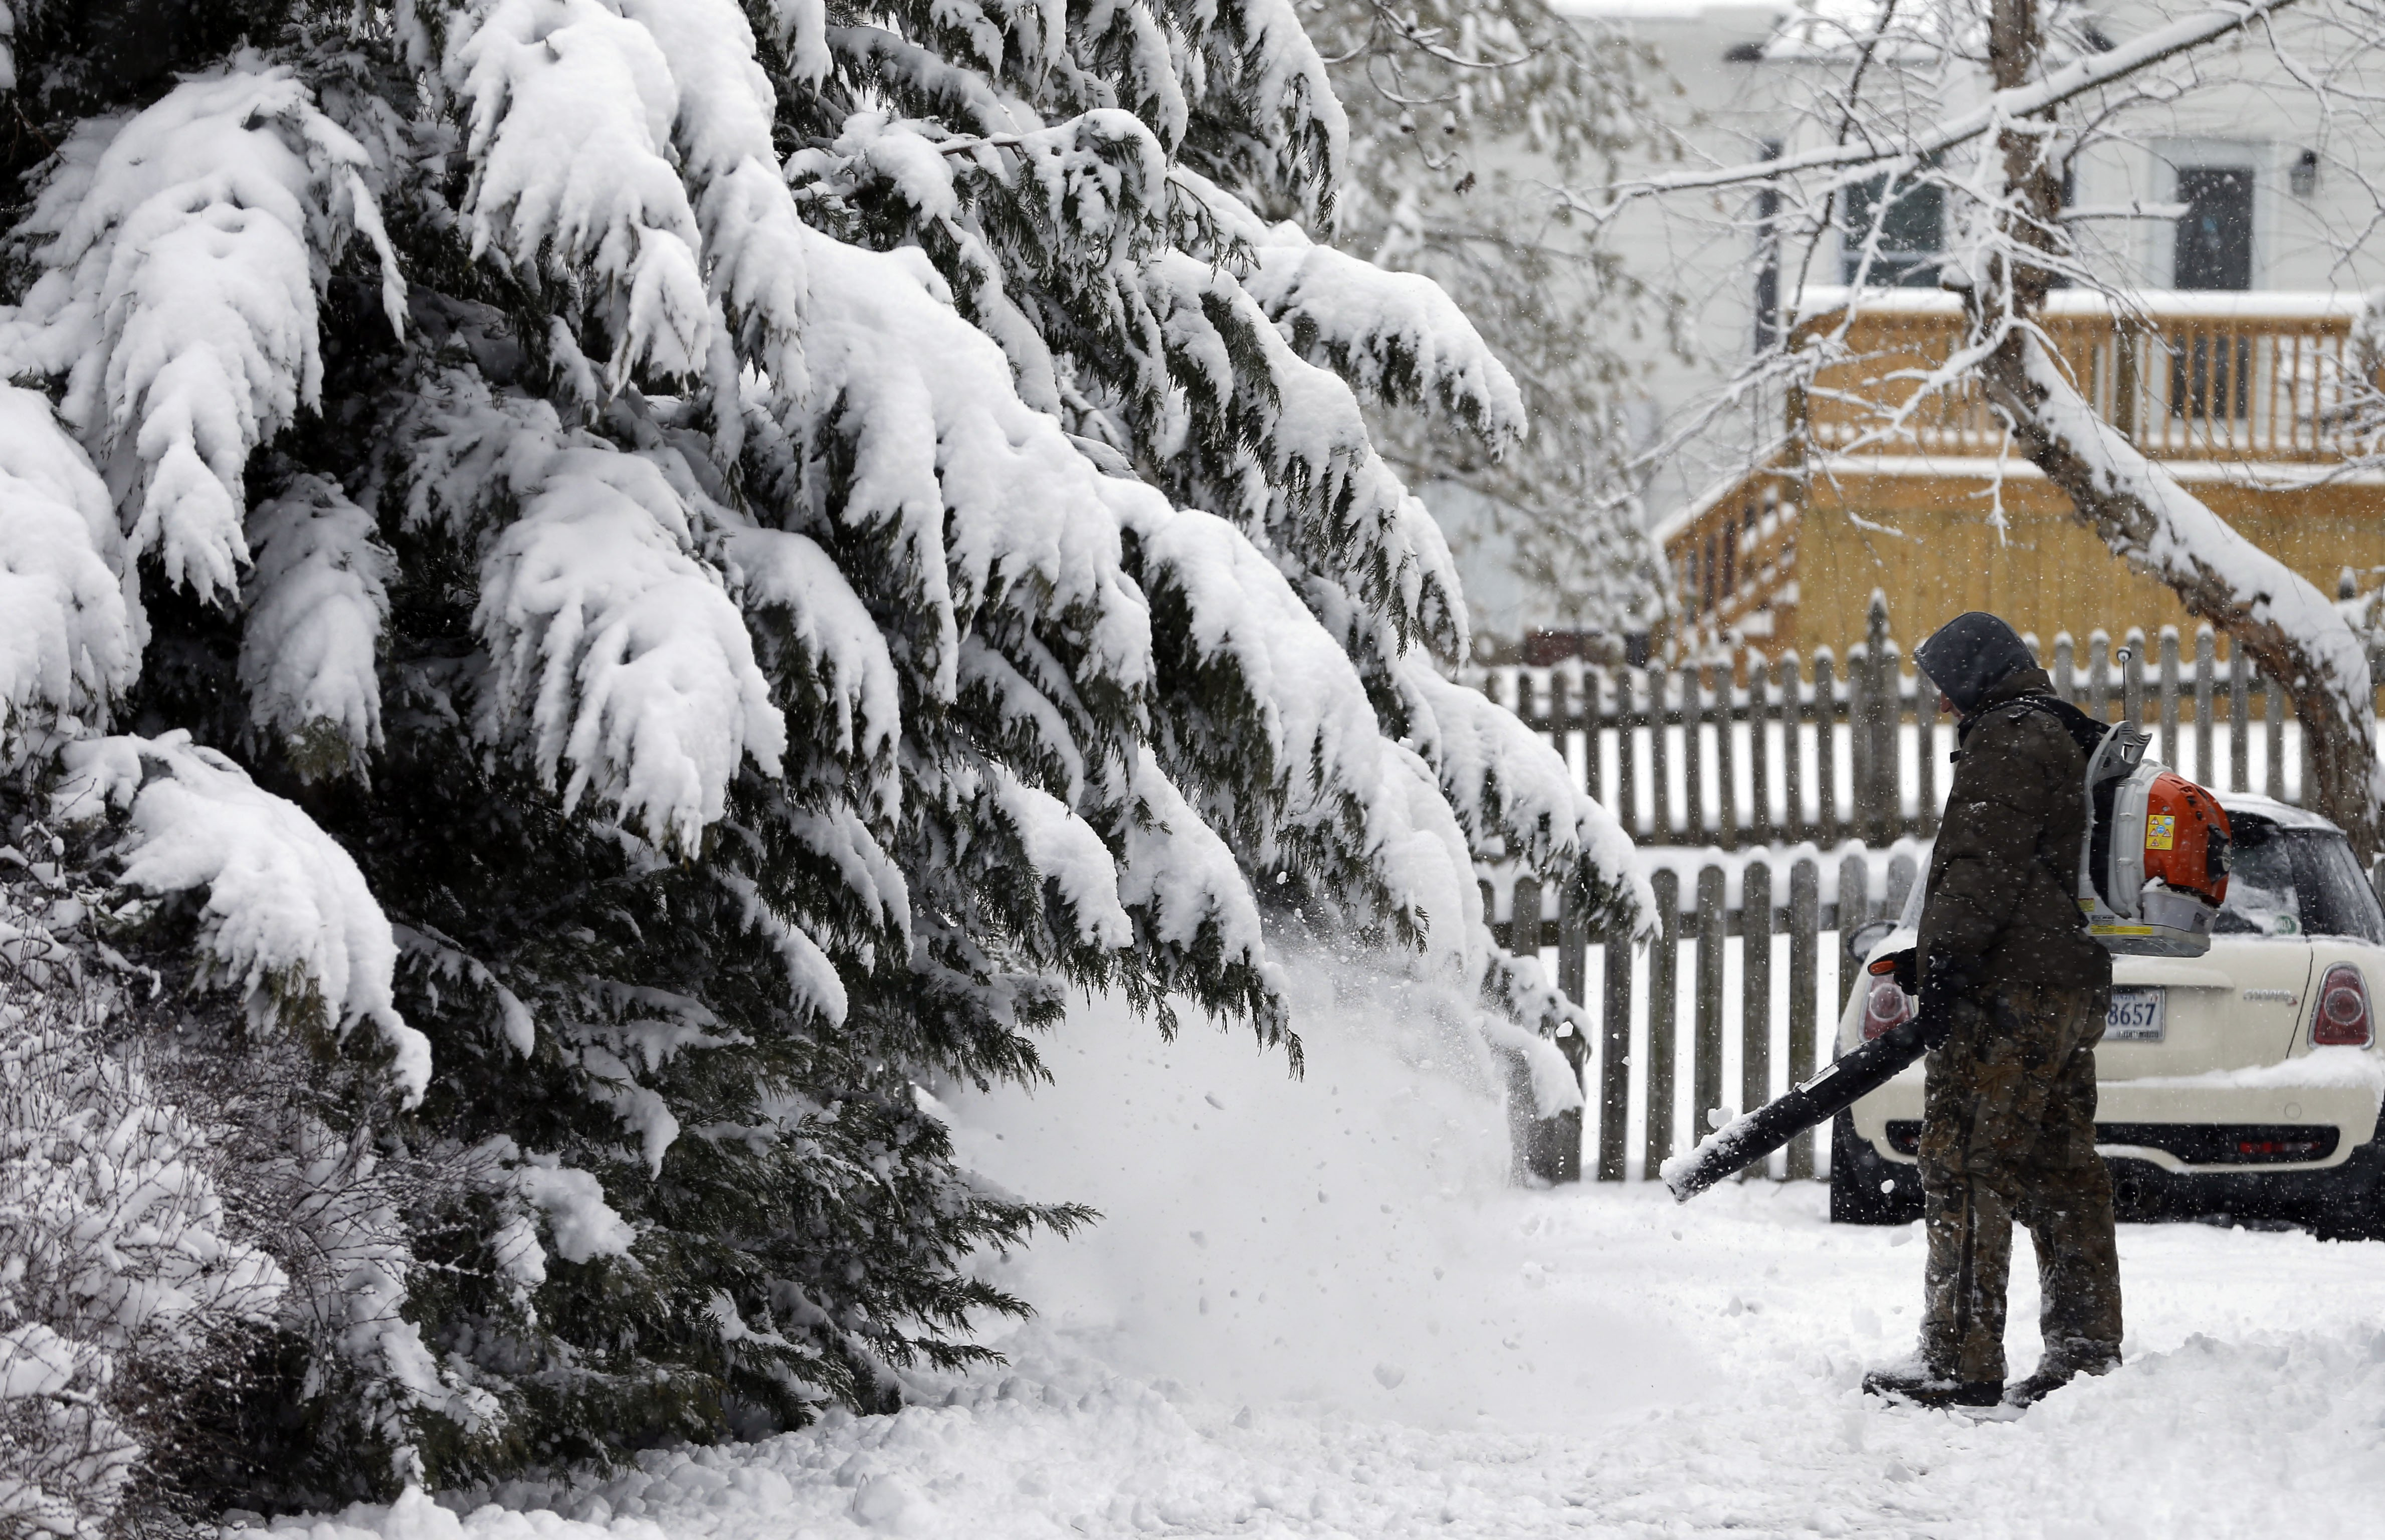 Breck Gorman clears his driveway with a blower during a snowstorm in Richmond, Va. on Feb. 26, 2015.